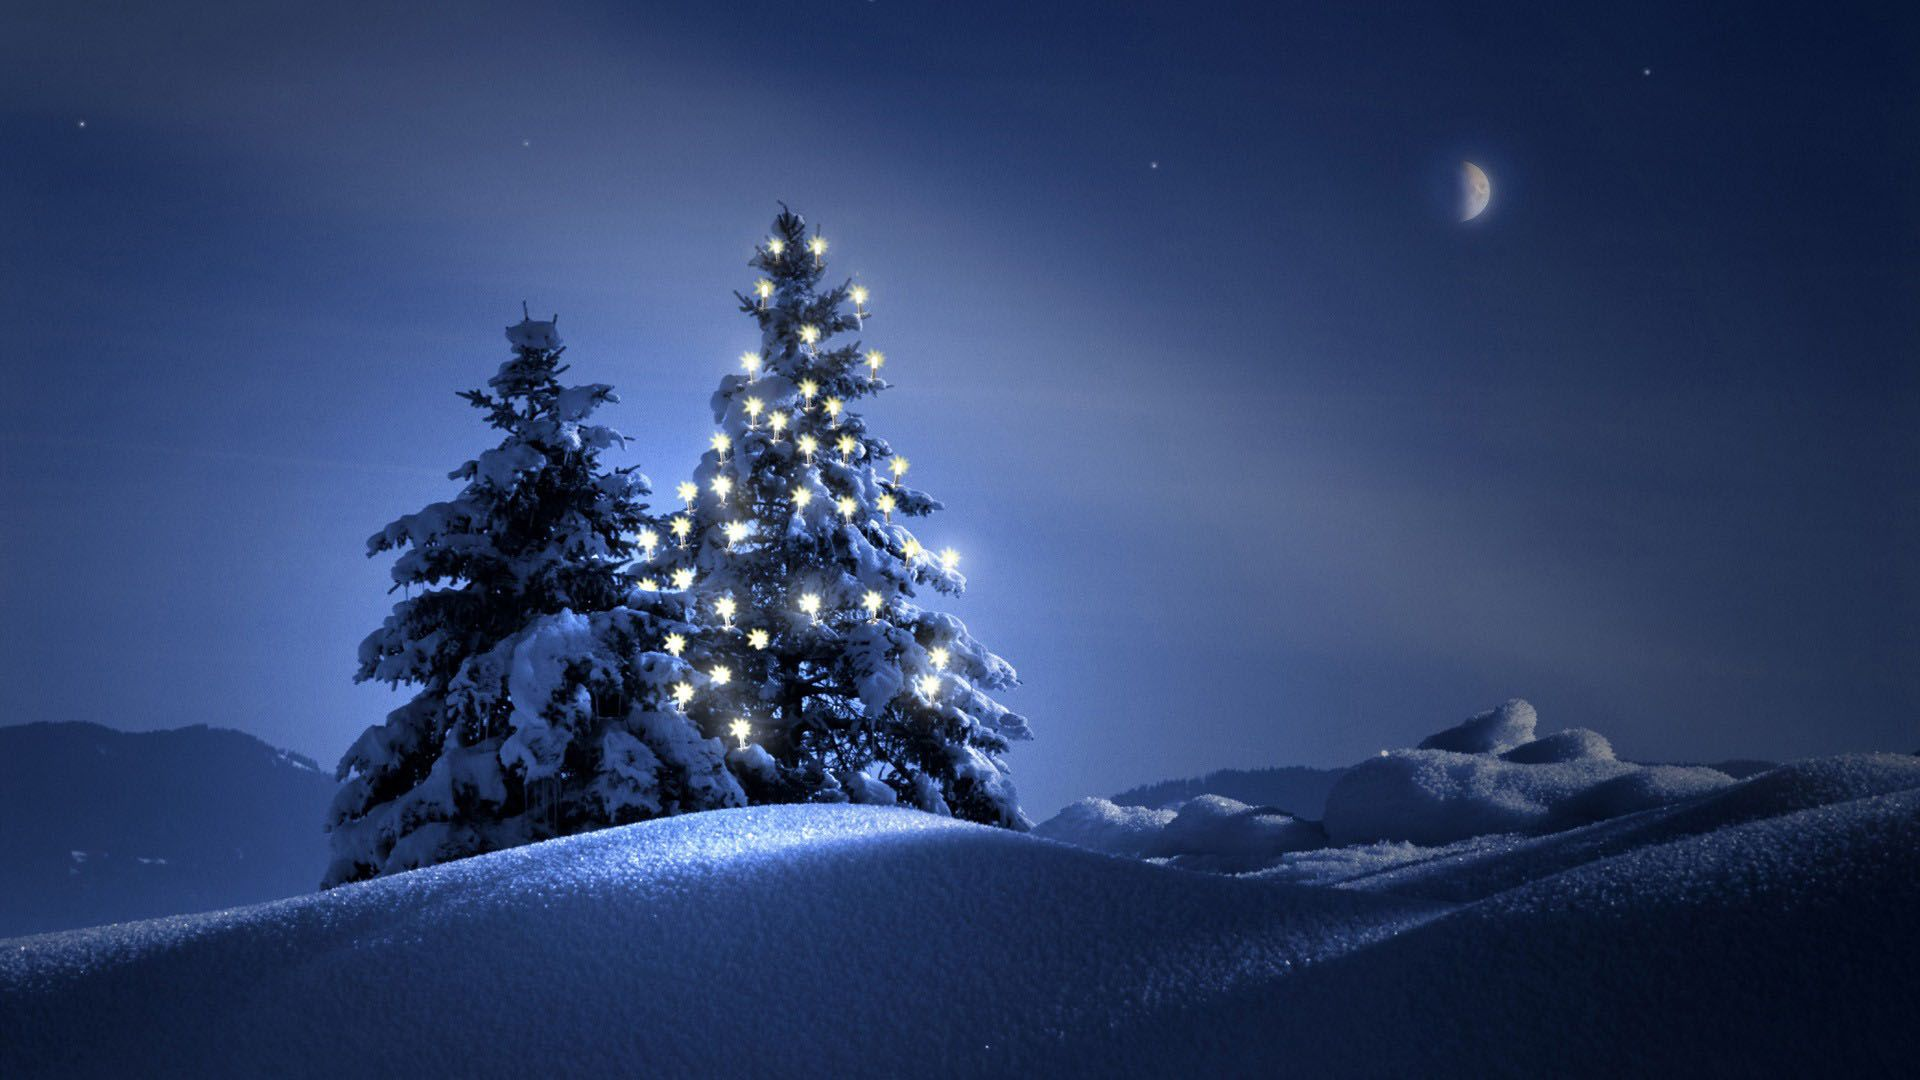 Beautiful Outdoor Christmas Trees At Night  1920X1080  Full